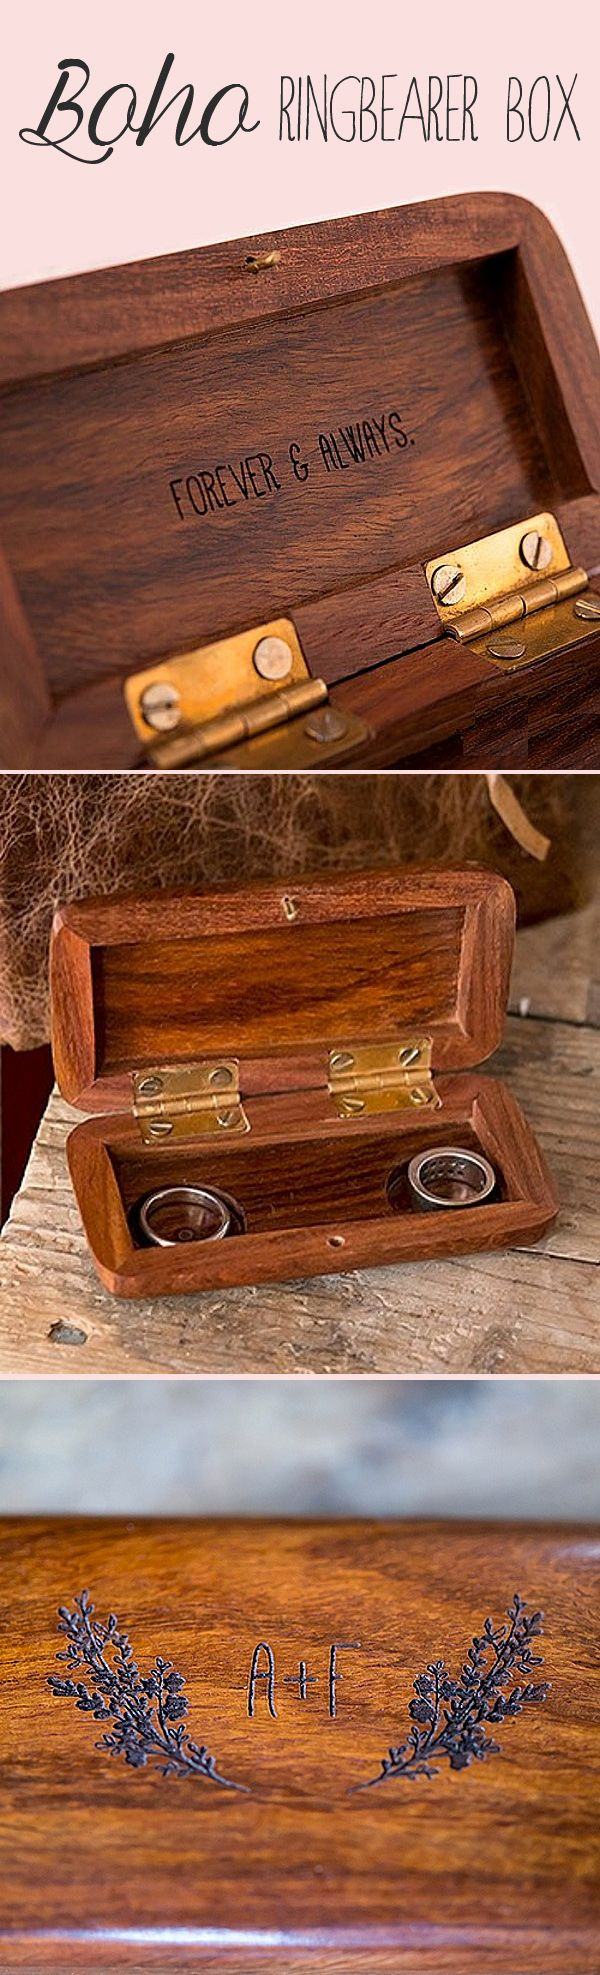 This his and hers carved wood ring box personalized with the bride and groom's initials is perfect for a romantic Boho woodland wedding ceremony. A rustic alternative to traditional ring pillows, this beautiful pocket-size ring box will be a treasured wedding souvenir that can be passed down for generations to come. This box can be ordered at http://myweddingreceptionideas.com/garland-surround-carved-initials-pocket-ring-box.asp